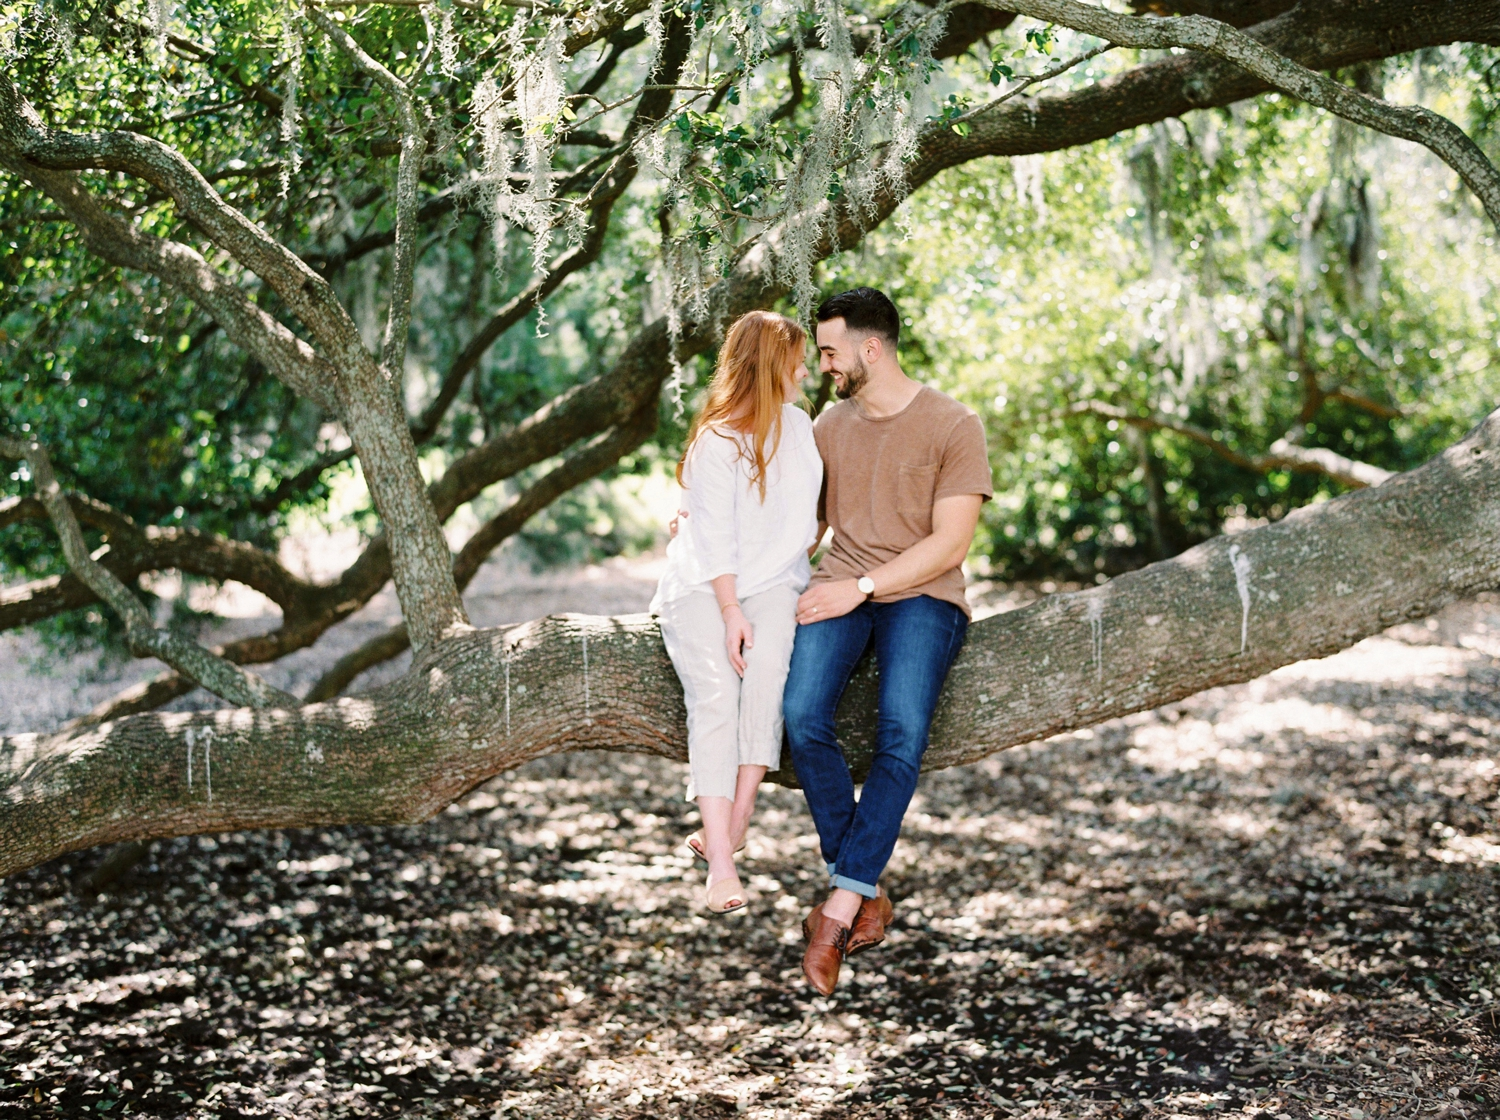 on wedding photographers | charleston anniversary | Justine Milton fine art film Photography | south carolina anniversary | fine art film photography | couple